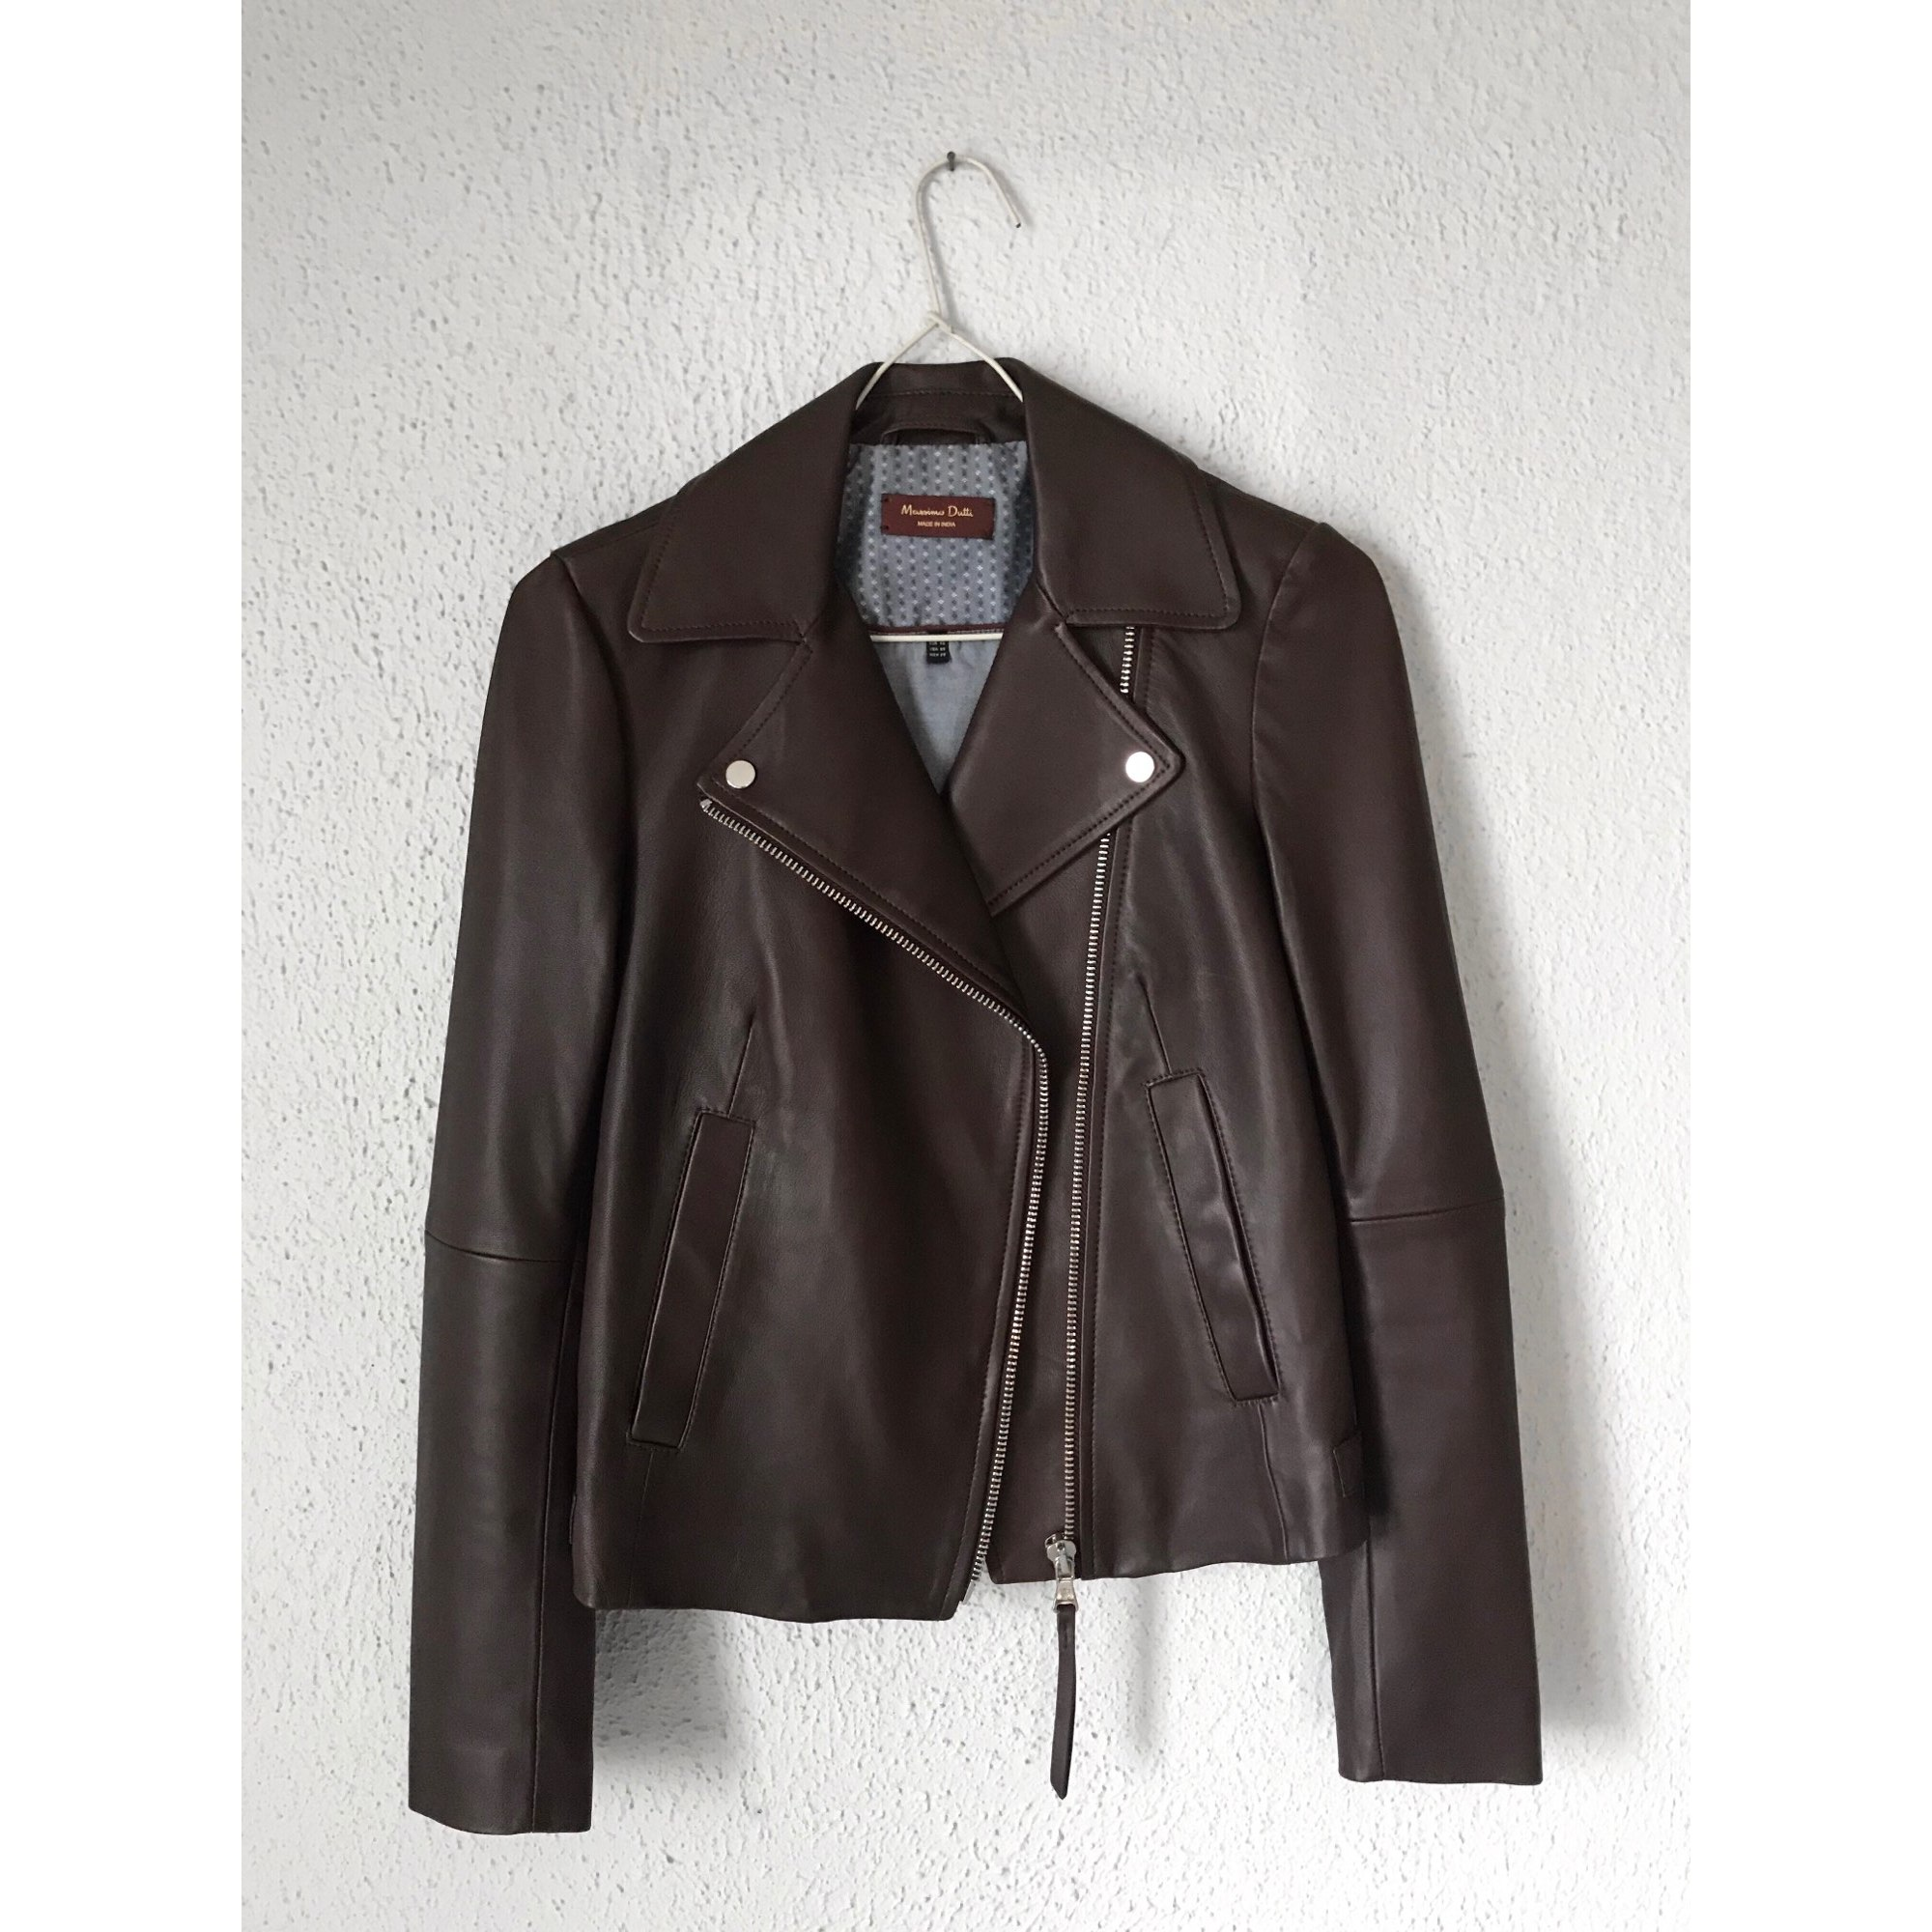 Leather Jacket MASSIMO DUTTI Red, burgundy